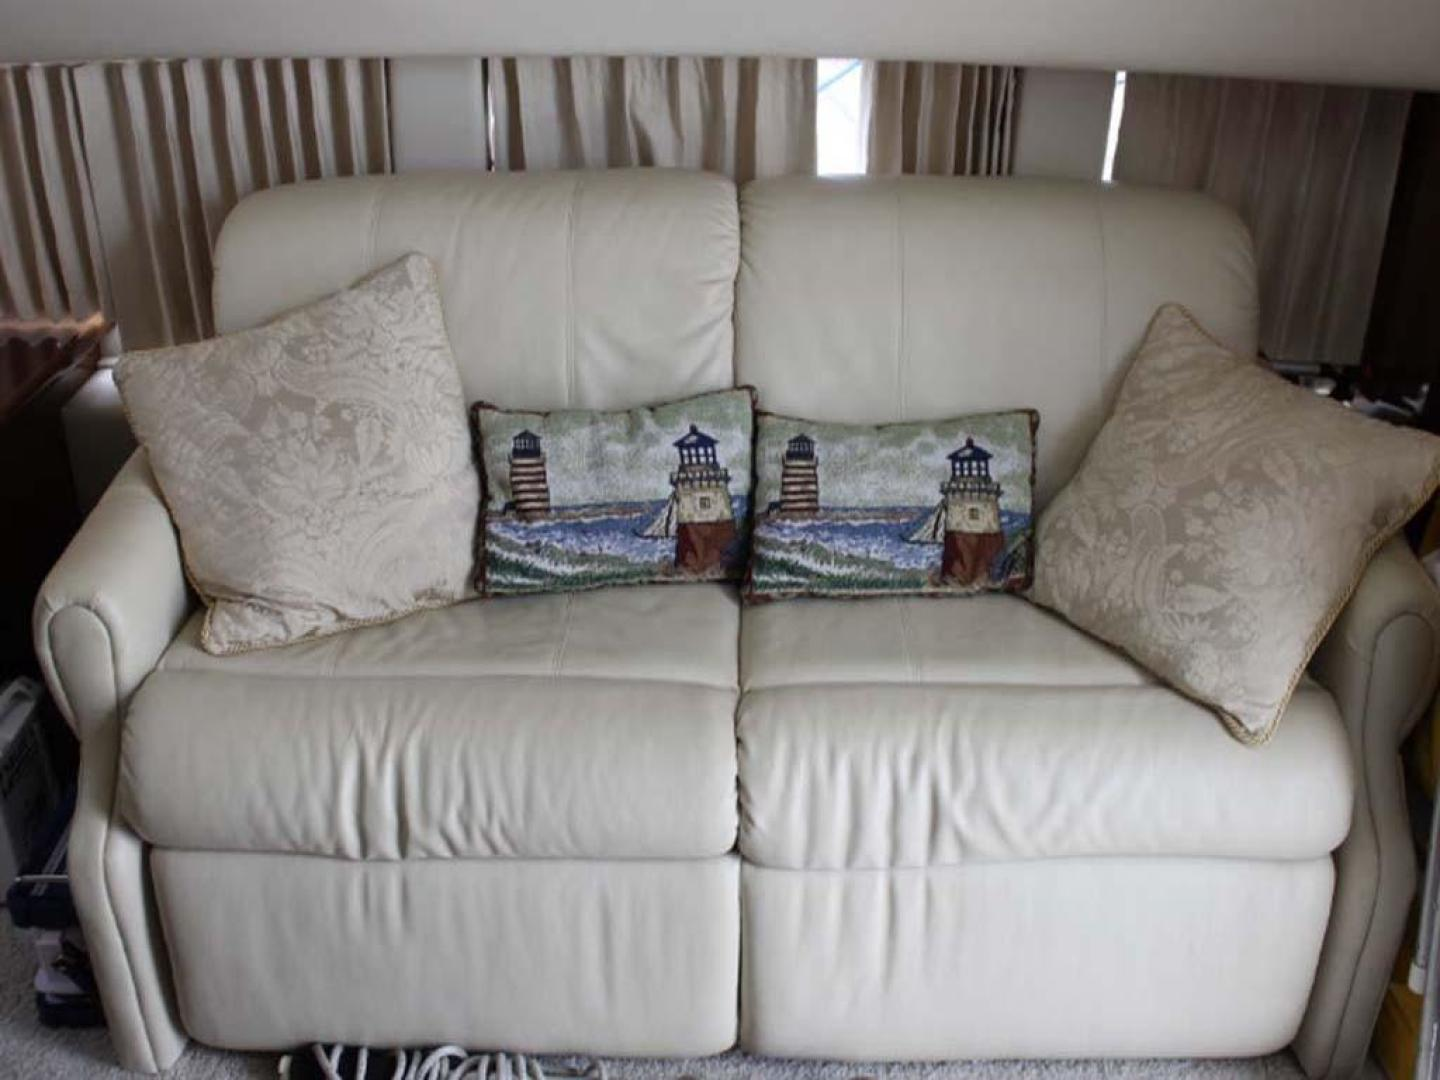 Carver-38 Super Sport 2007-Amazed Wildwood-New Jersey-United States-Salon Settee-928135 | Thumbnail